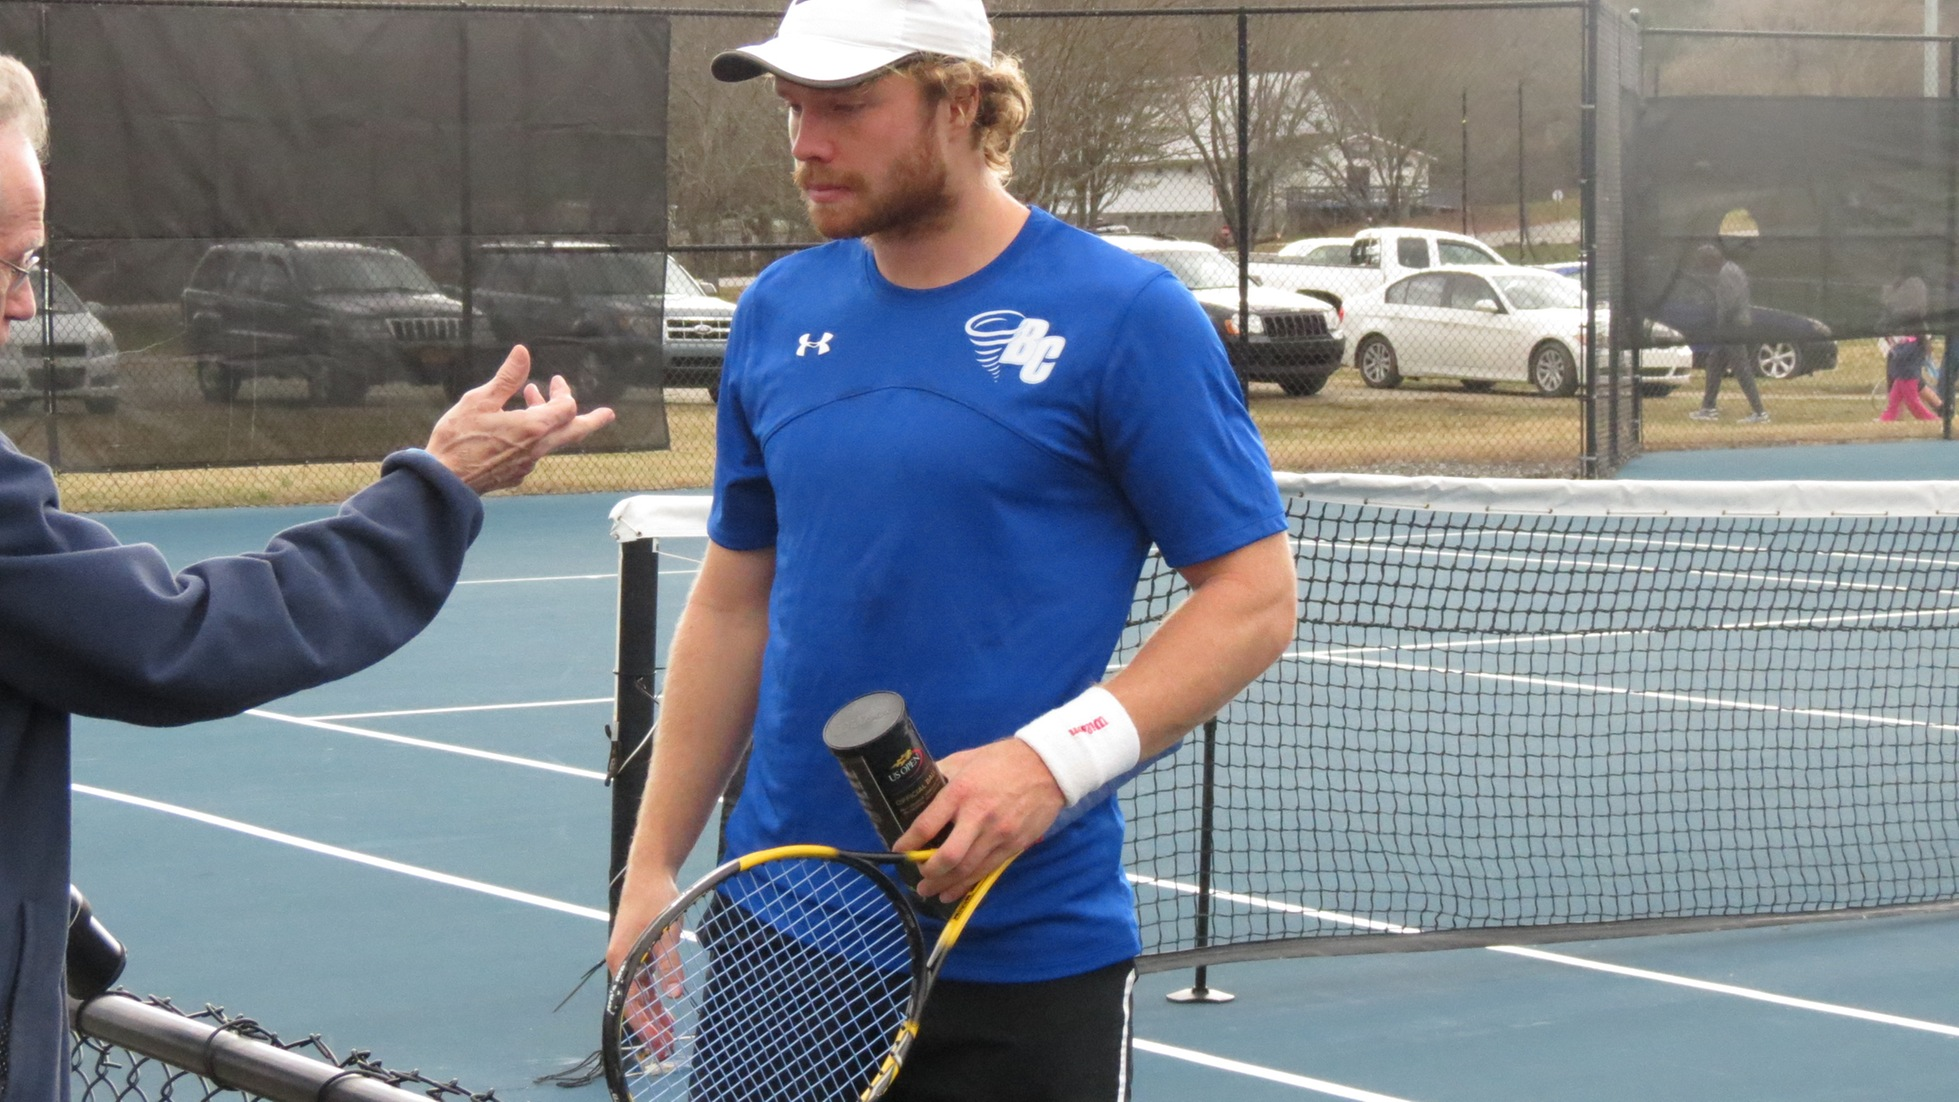 Mittring Wins Seventh Straight Singles Match